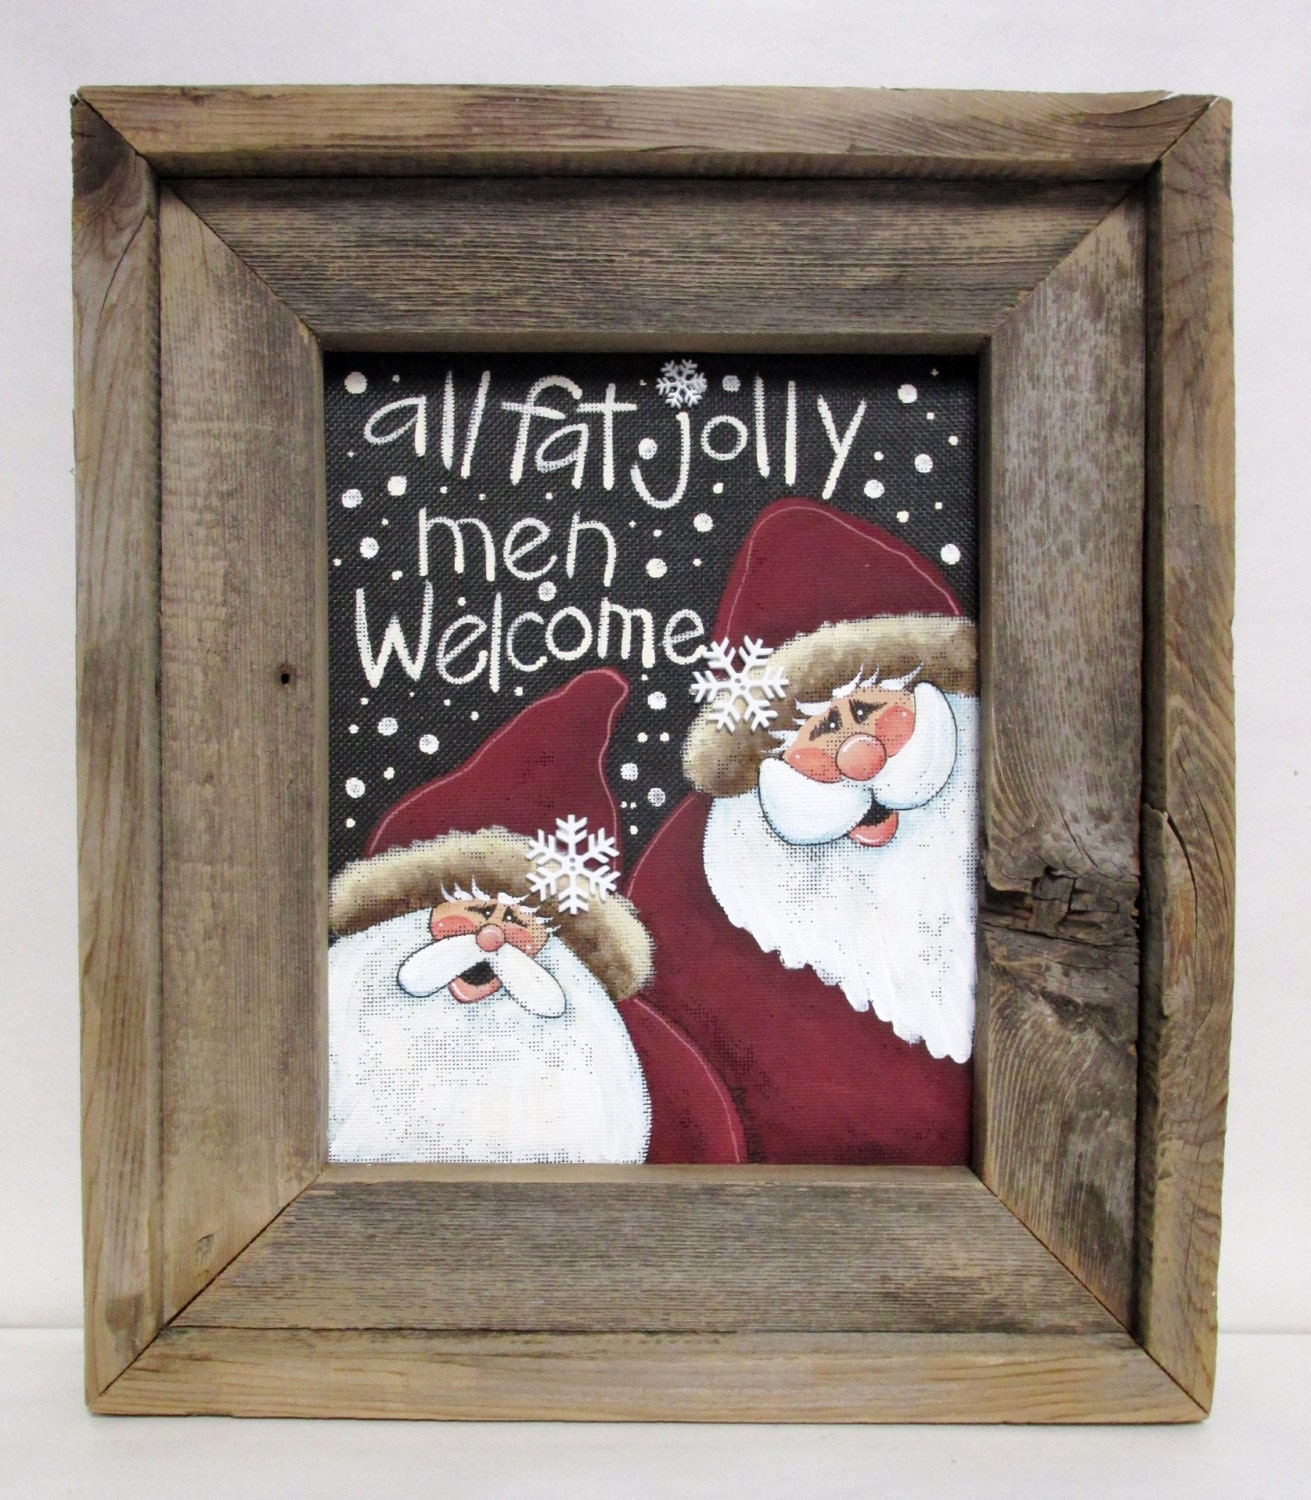 Rustic All Fat Jolly Men Welcome Sign Santa Claus Sign